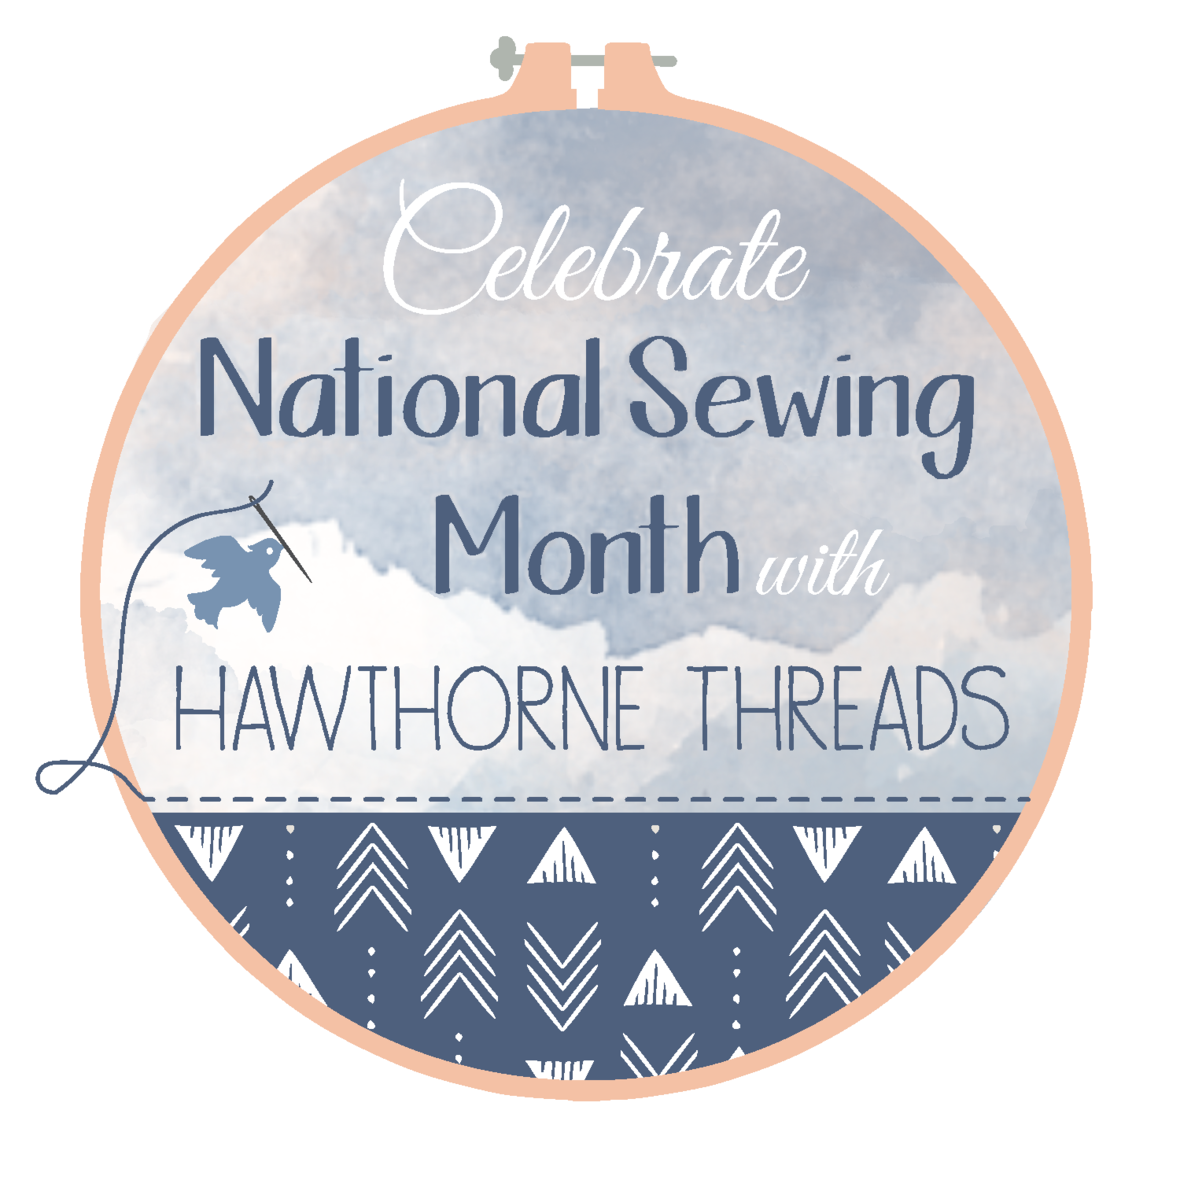 national sewing month image